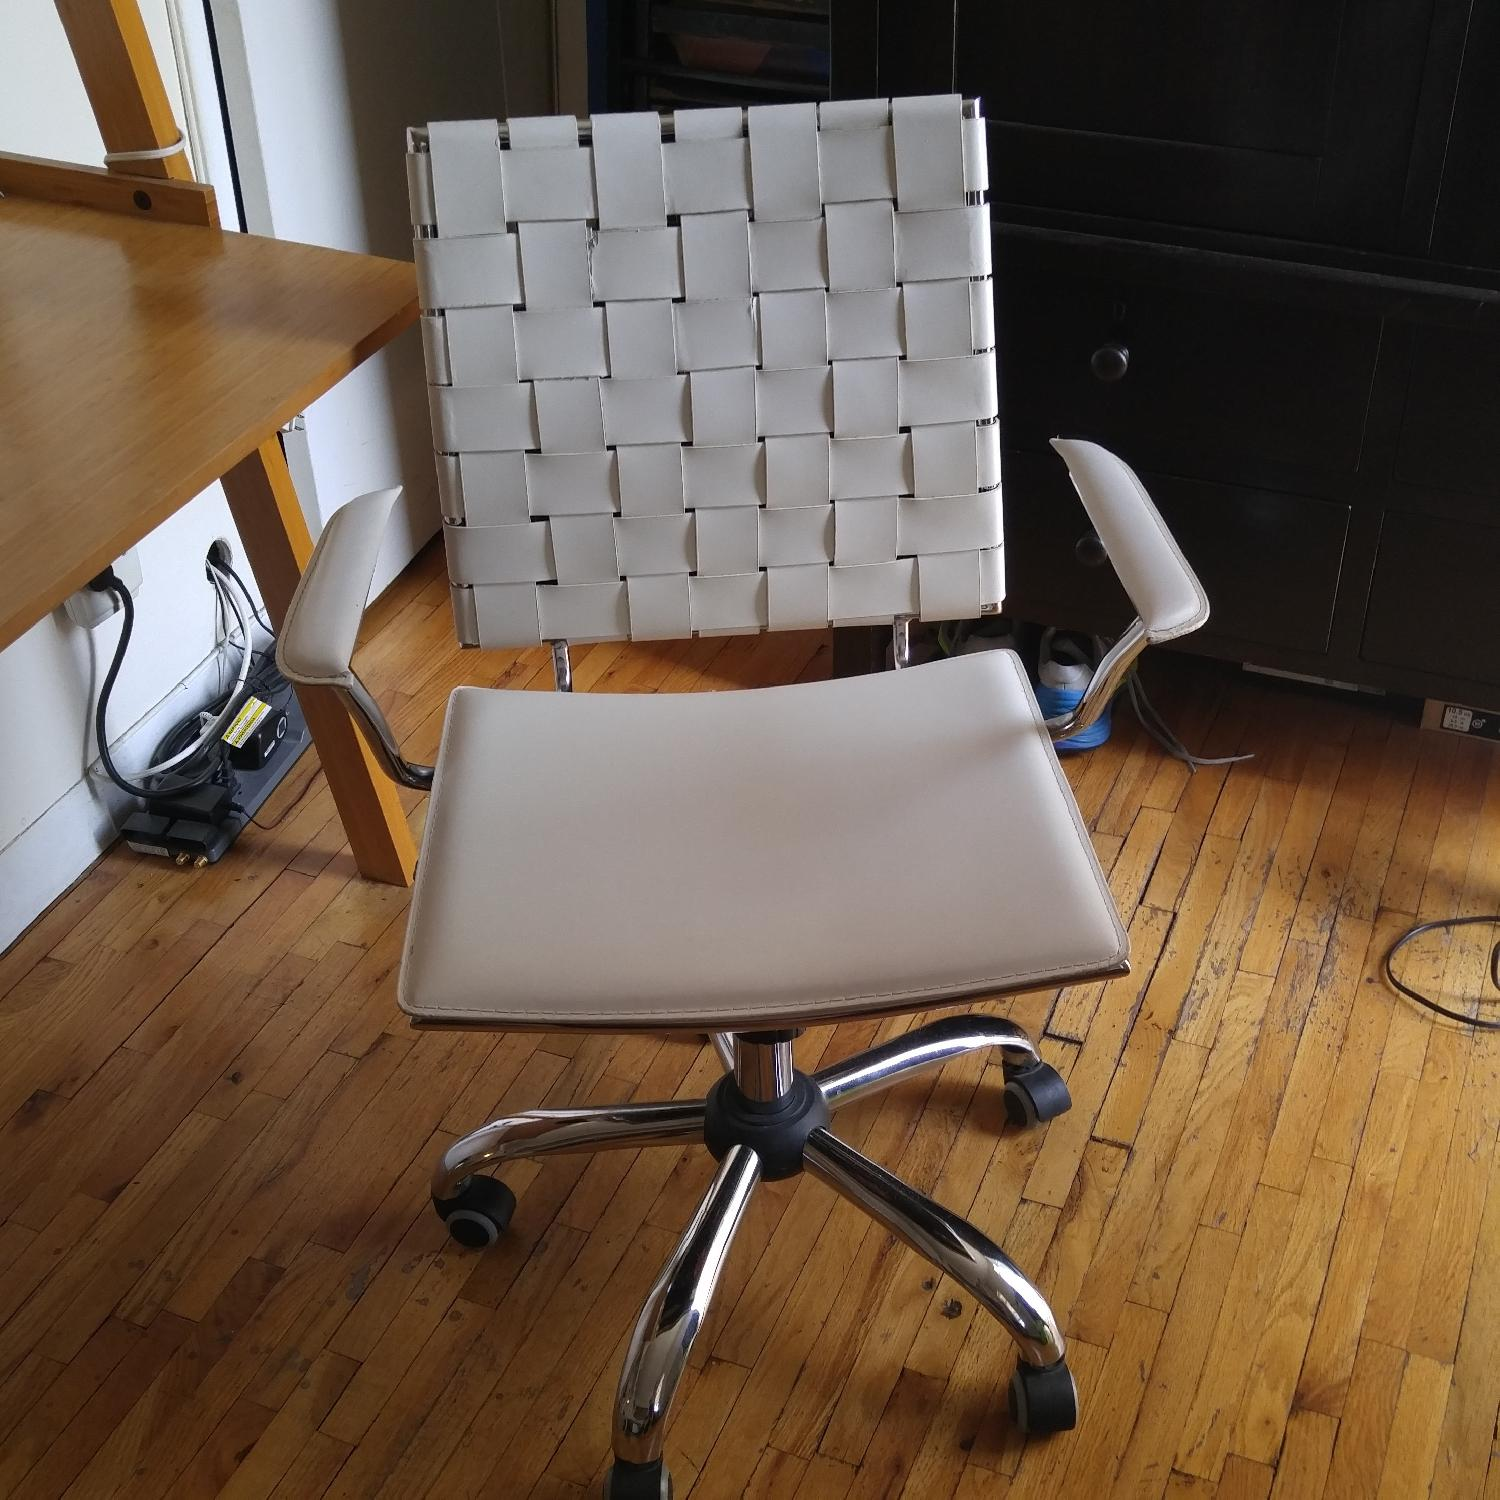 Italian Made White Leather & Chrome Office Chair - image-2